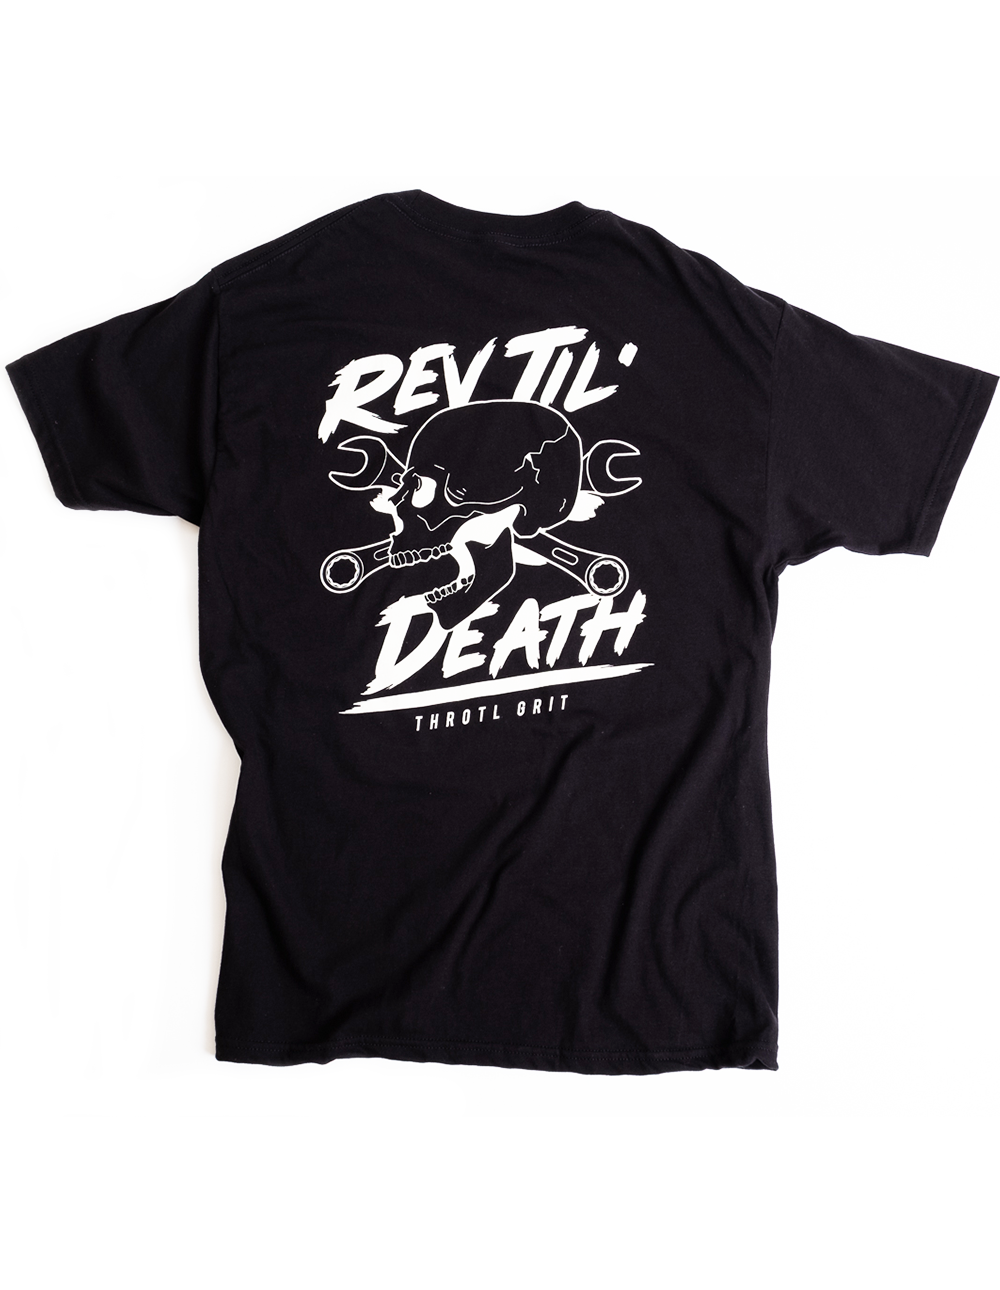 Art and ink rev til death vintage printed t-shirt look